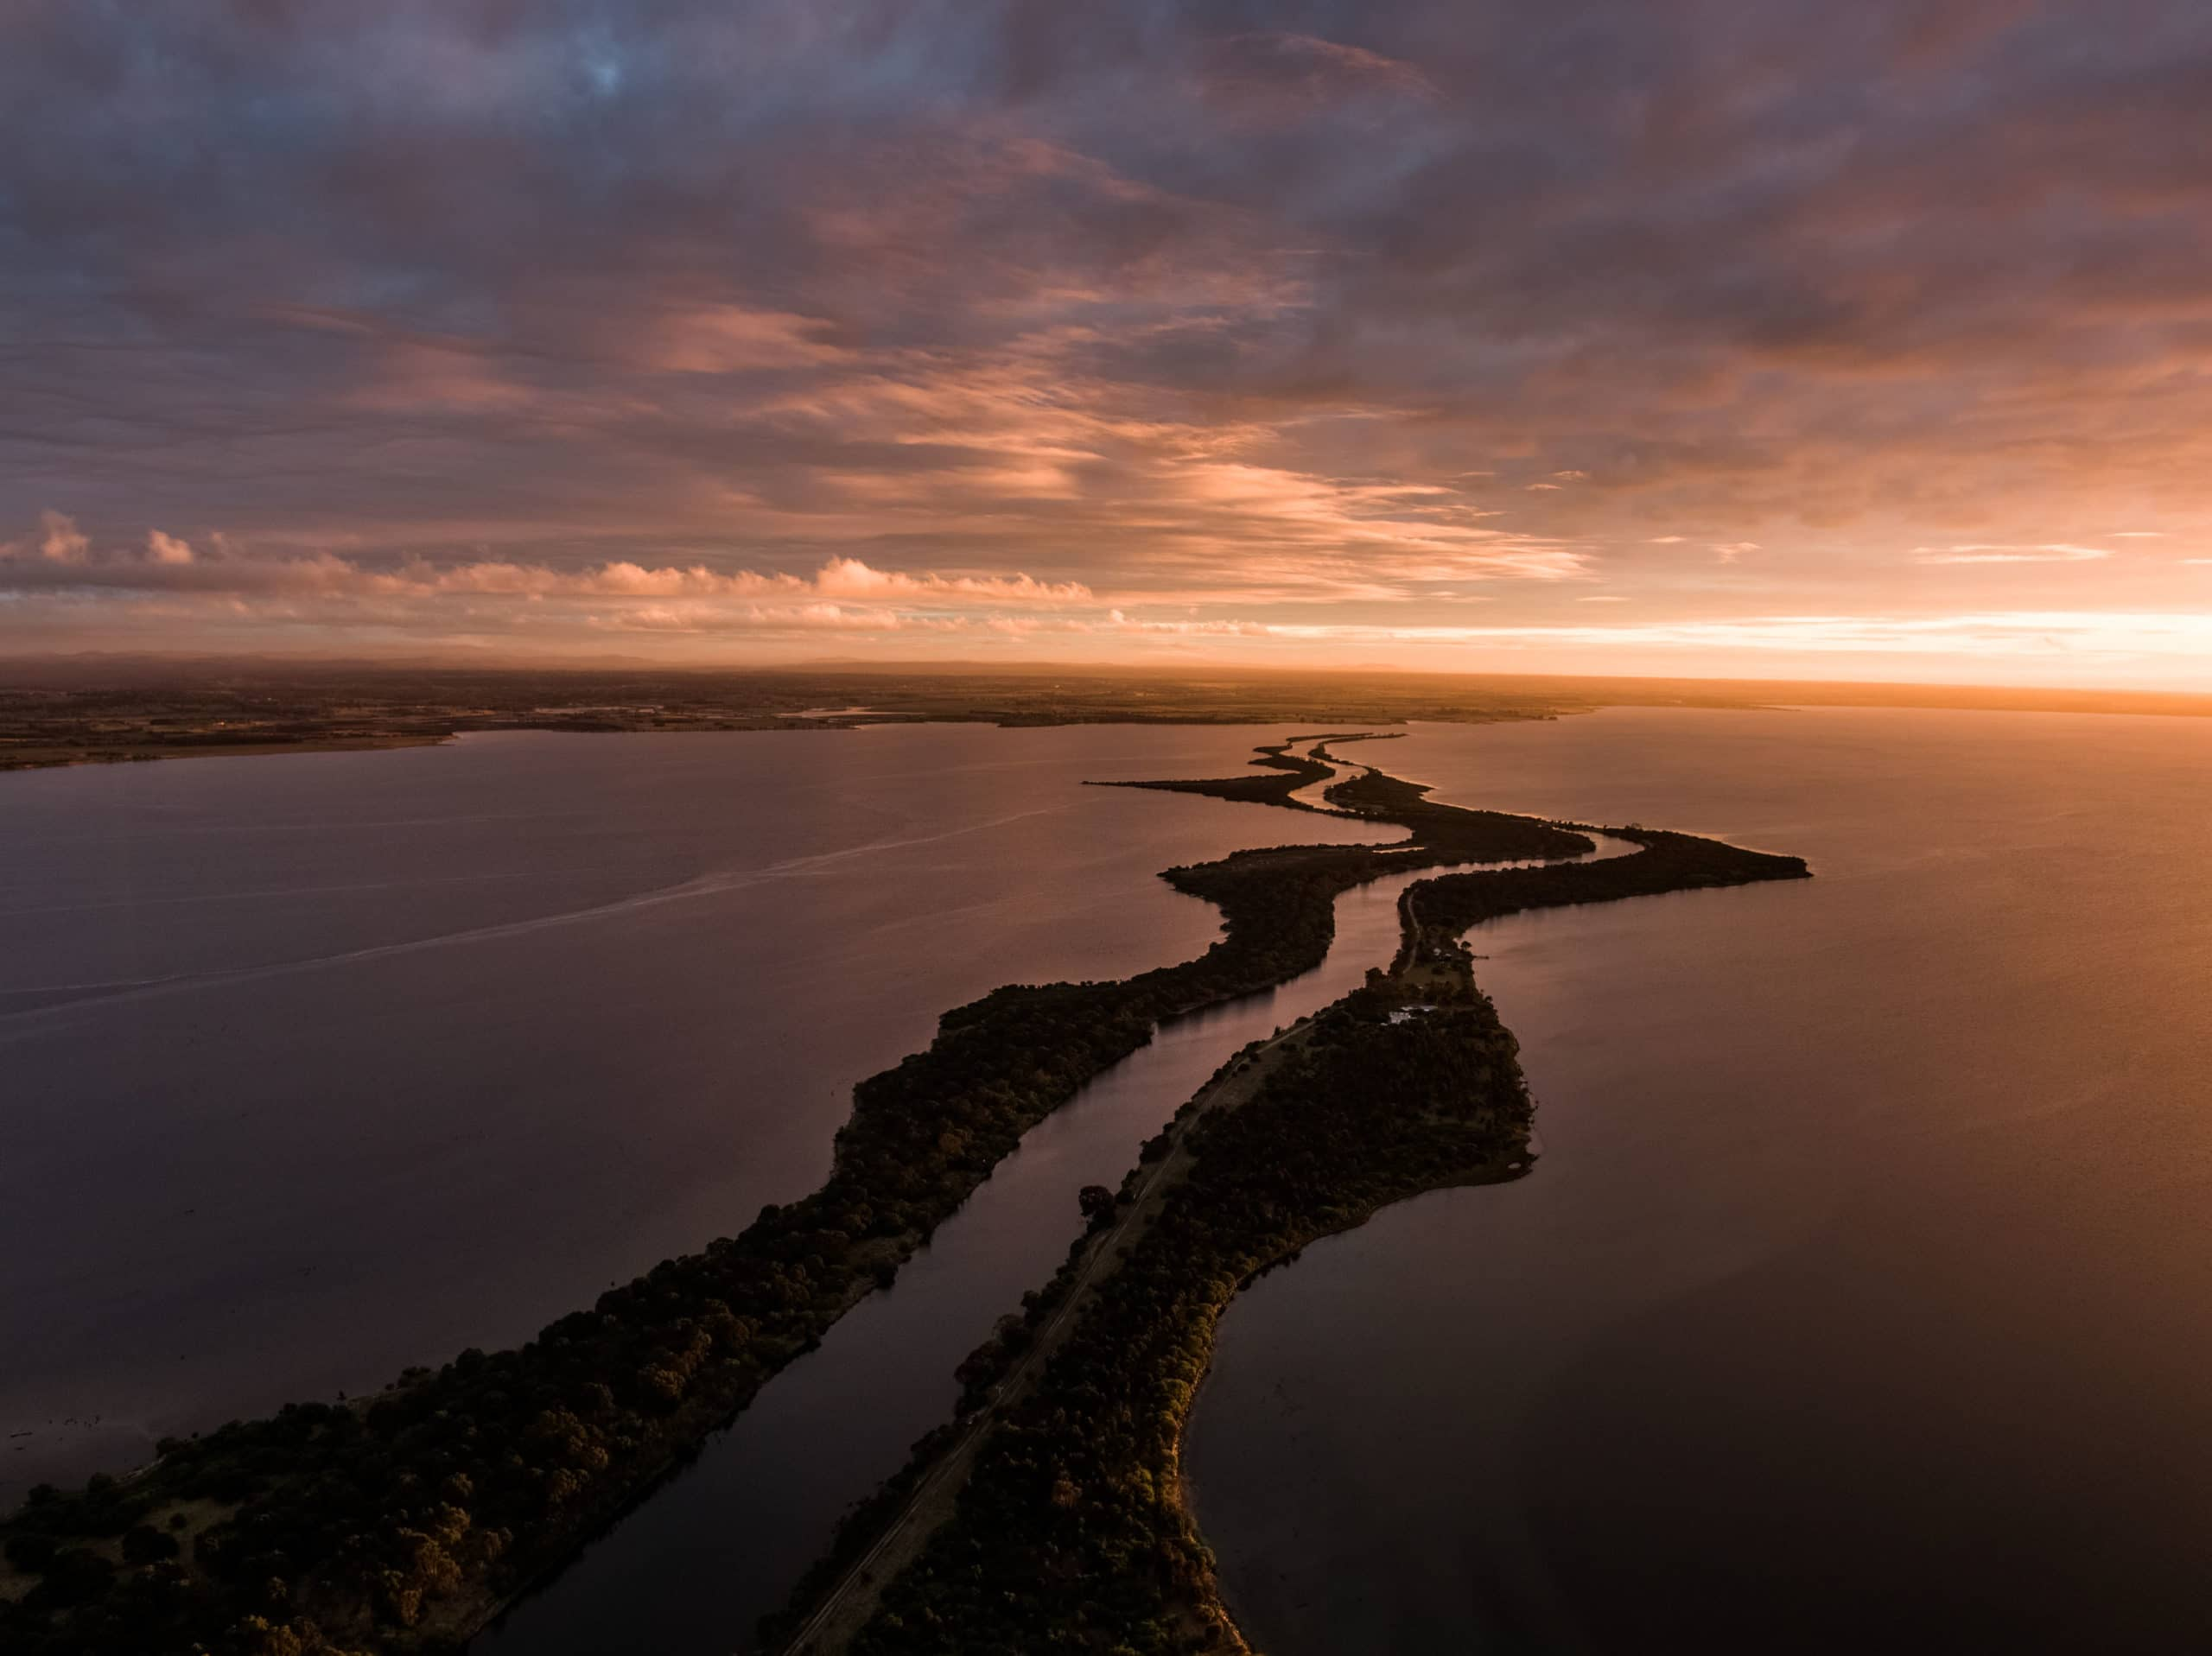 Lakes Entrance Sunset Drone Photography